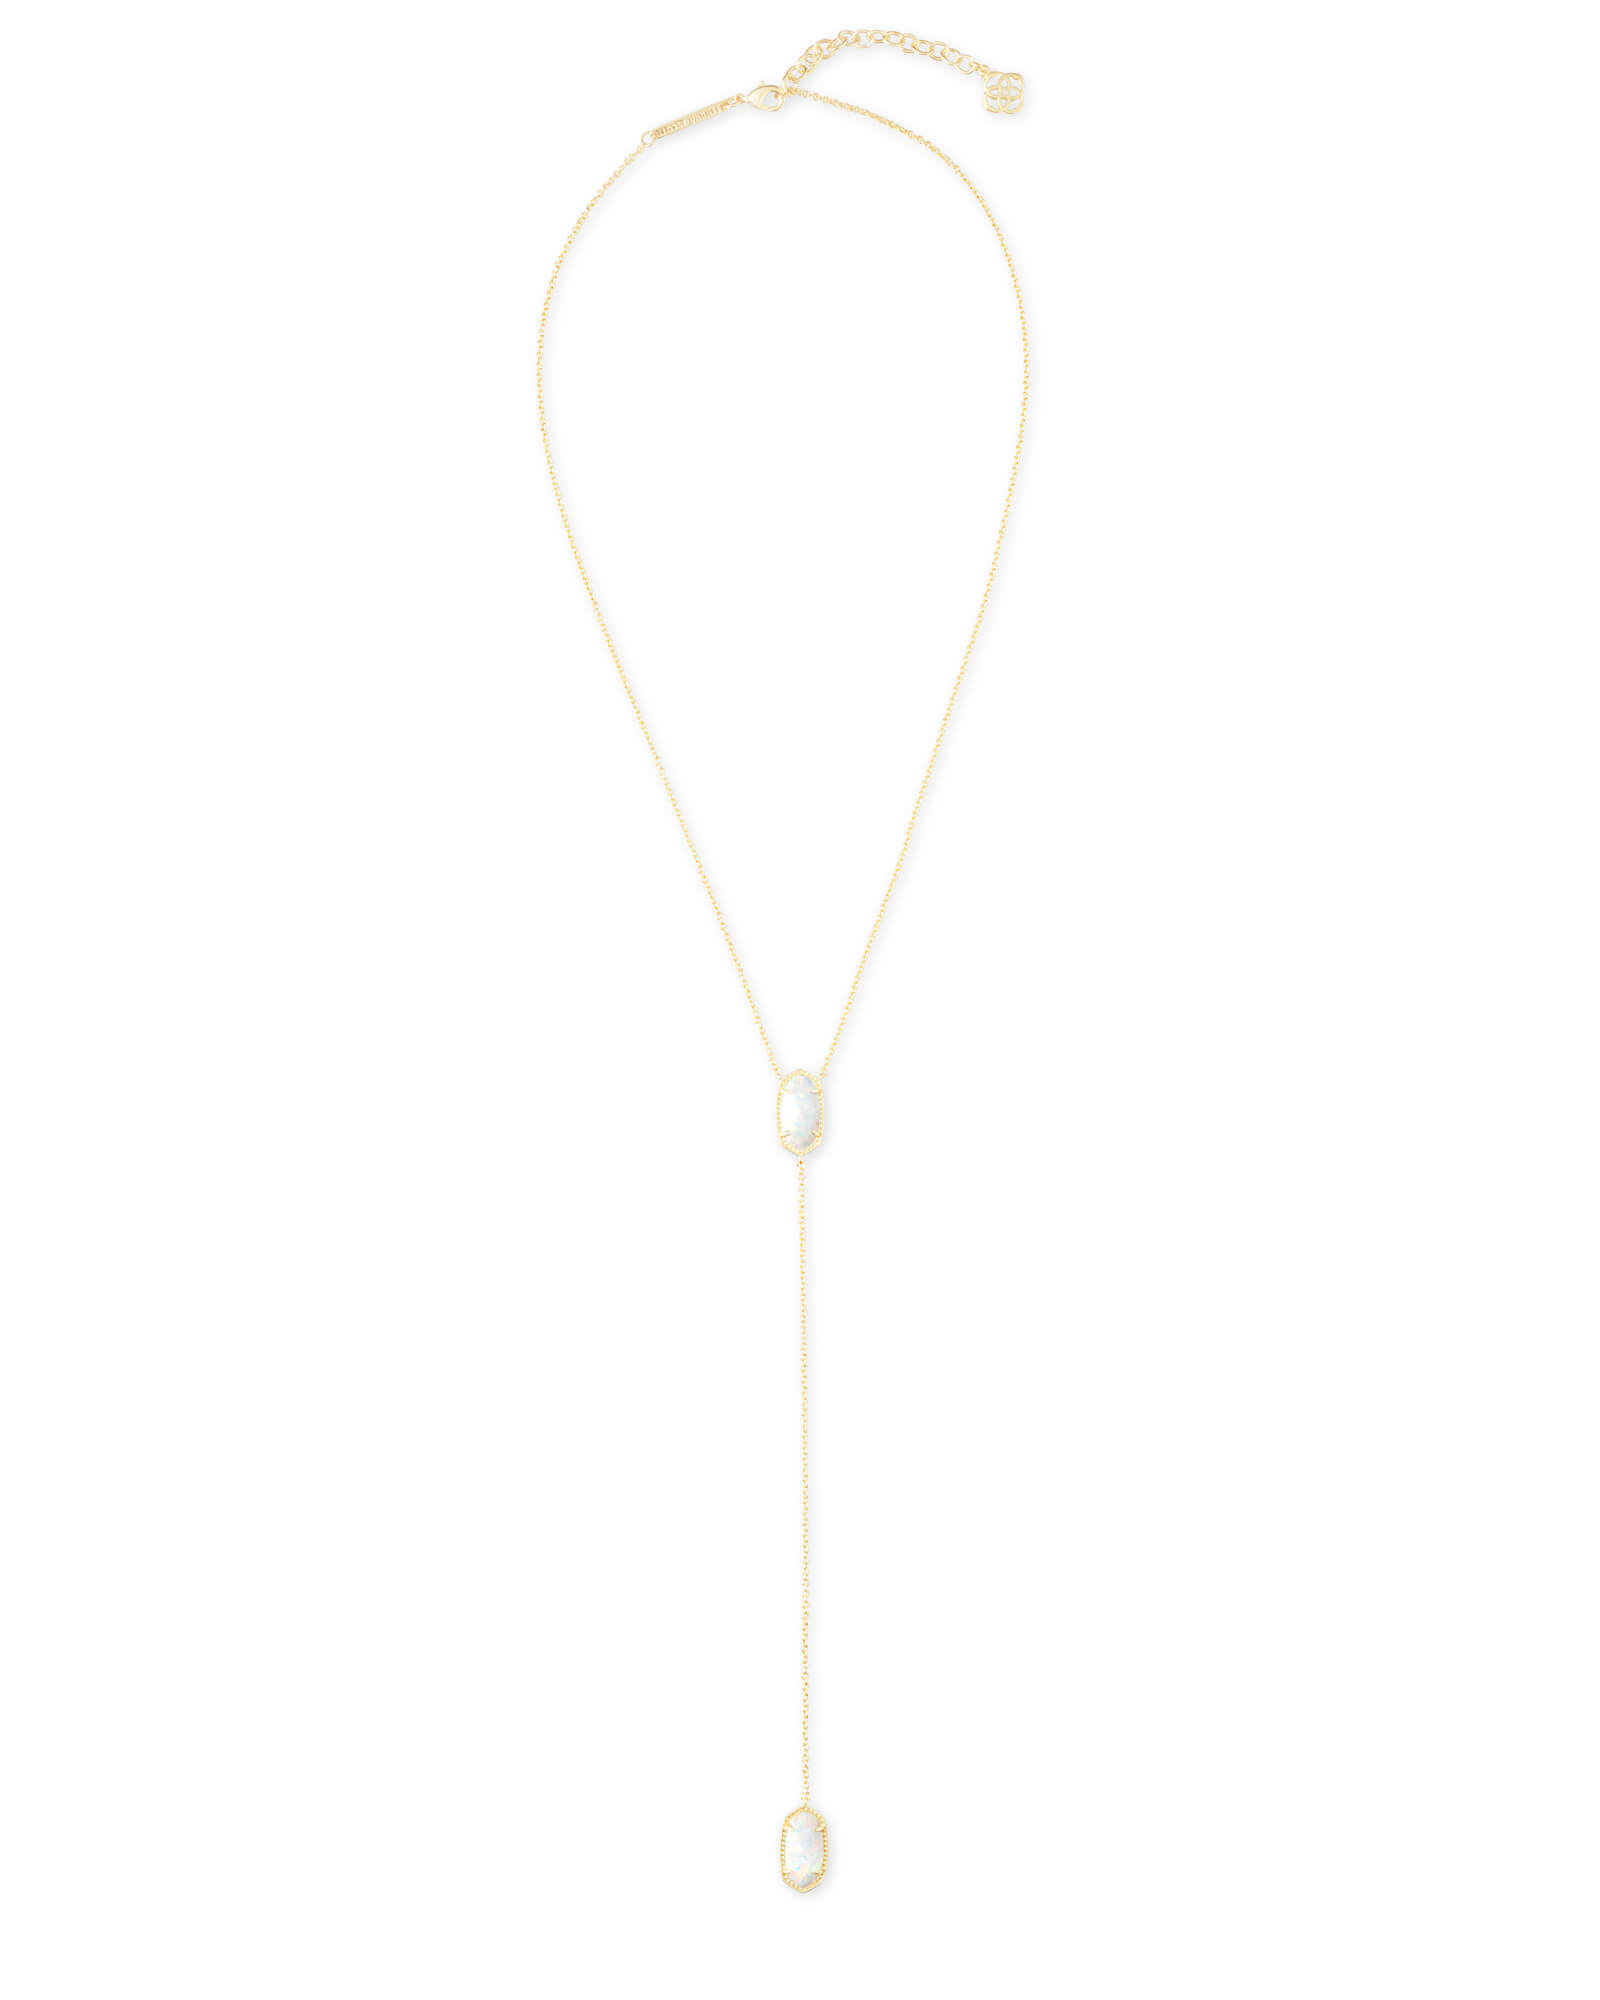 Ellison Gold Y Necklace in White Kyocera Opal